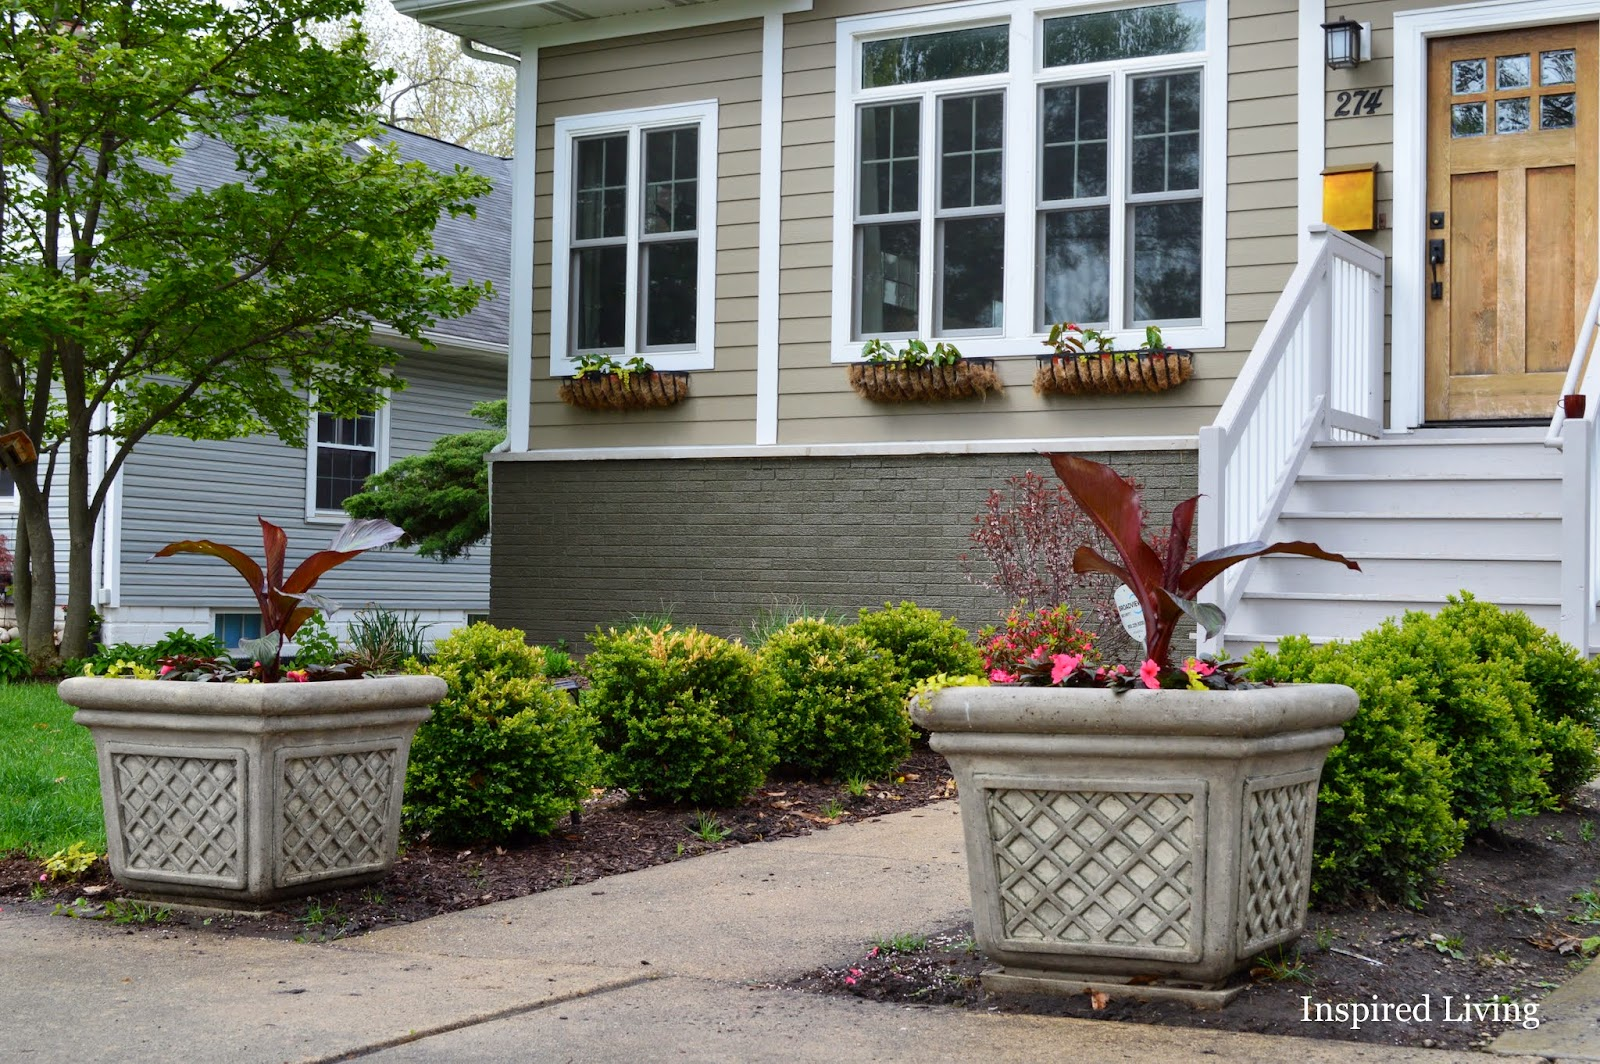 Inspired living creating an entrance summer planters for Planter ideas for front of house